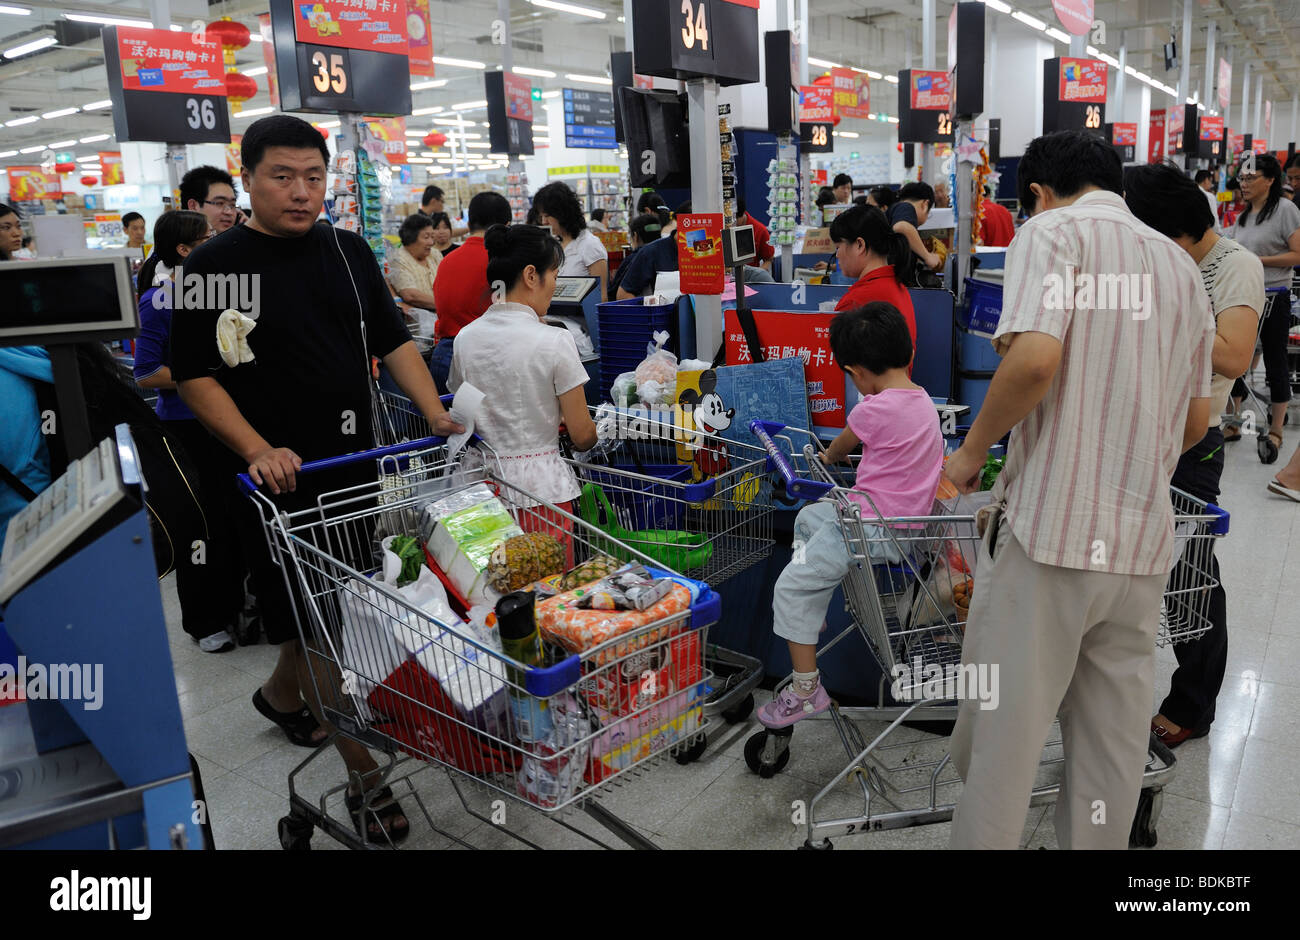 Customers at the checkout of Wal-Mart supermarket in Beijing, China. 2009 - Stock Image